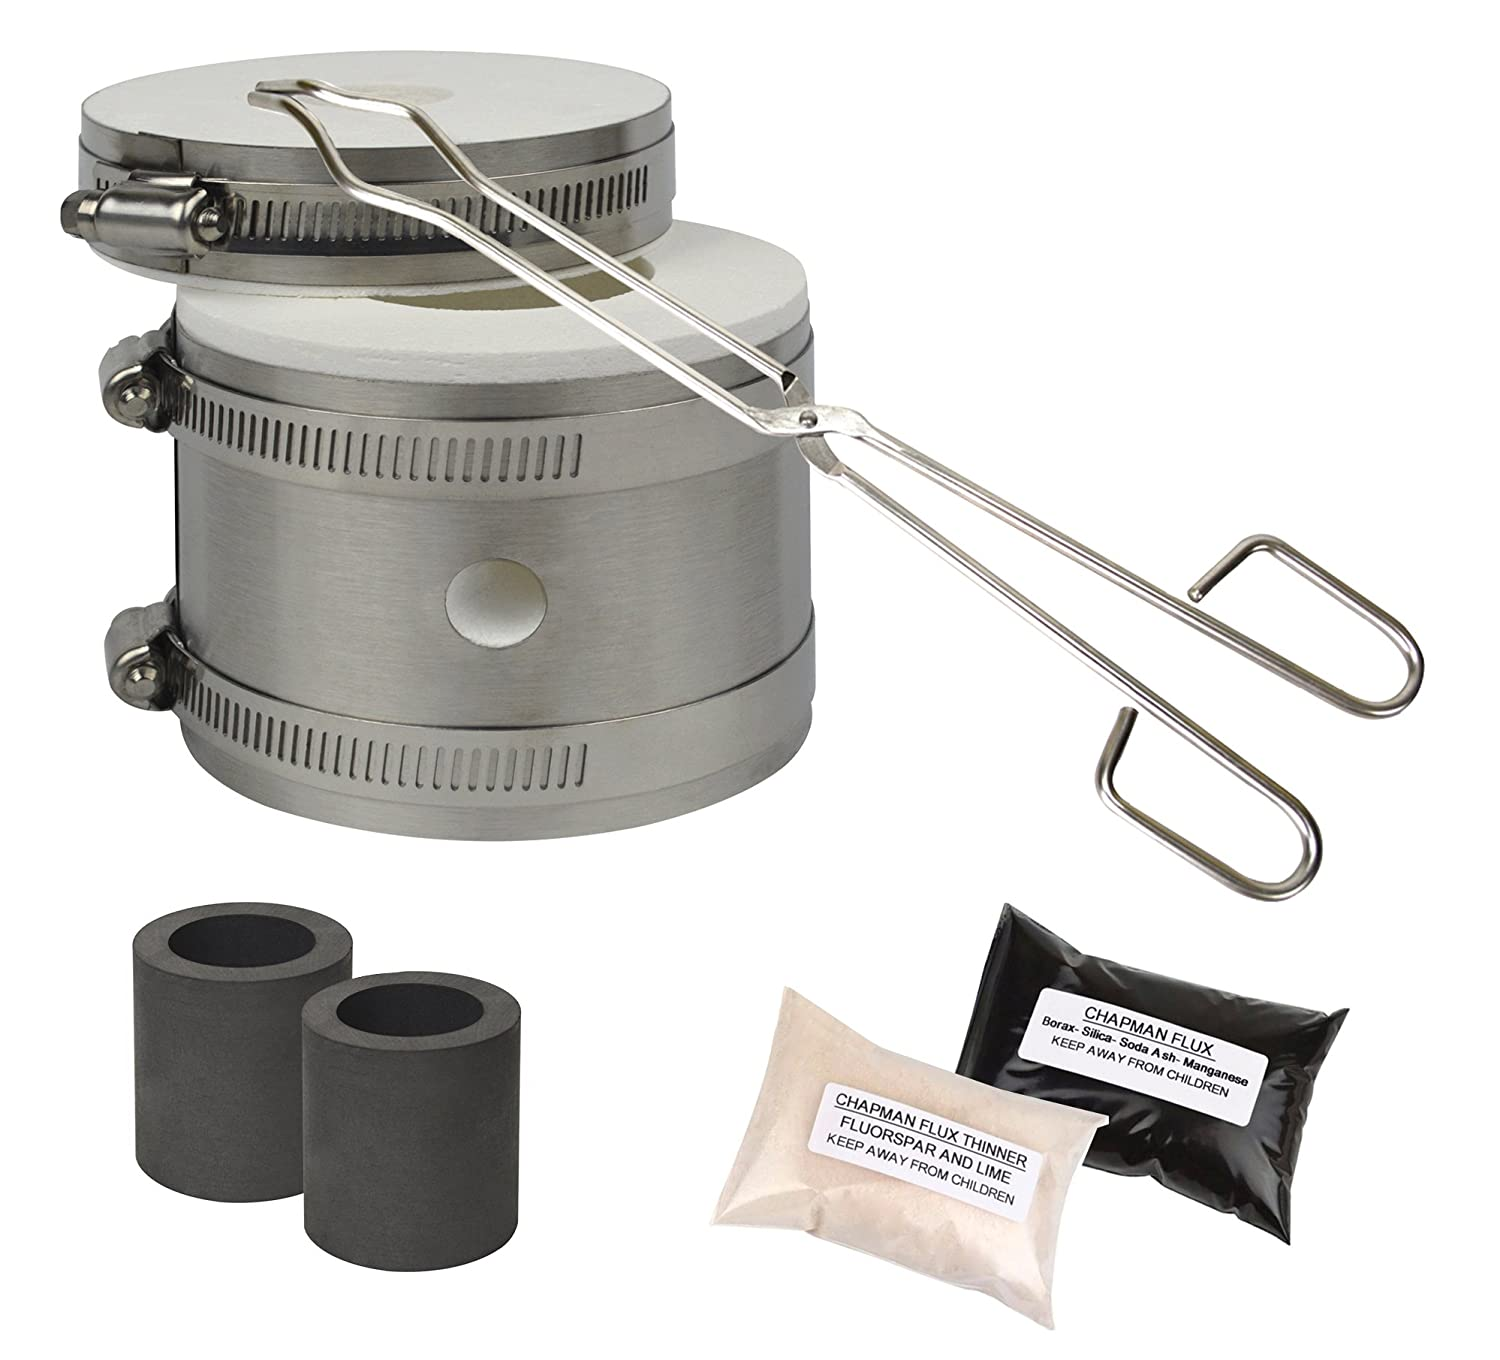 Mini Kwik Kiln Kit w/ Tongs Chapman Flux Flux Thinner & 2 Graphite Crucibles Jewelry Making Gold Silver Melting Casting Gas Furnace Kit PMC Supplies KIT-0127